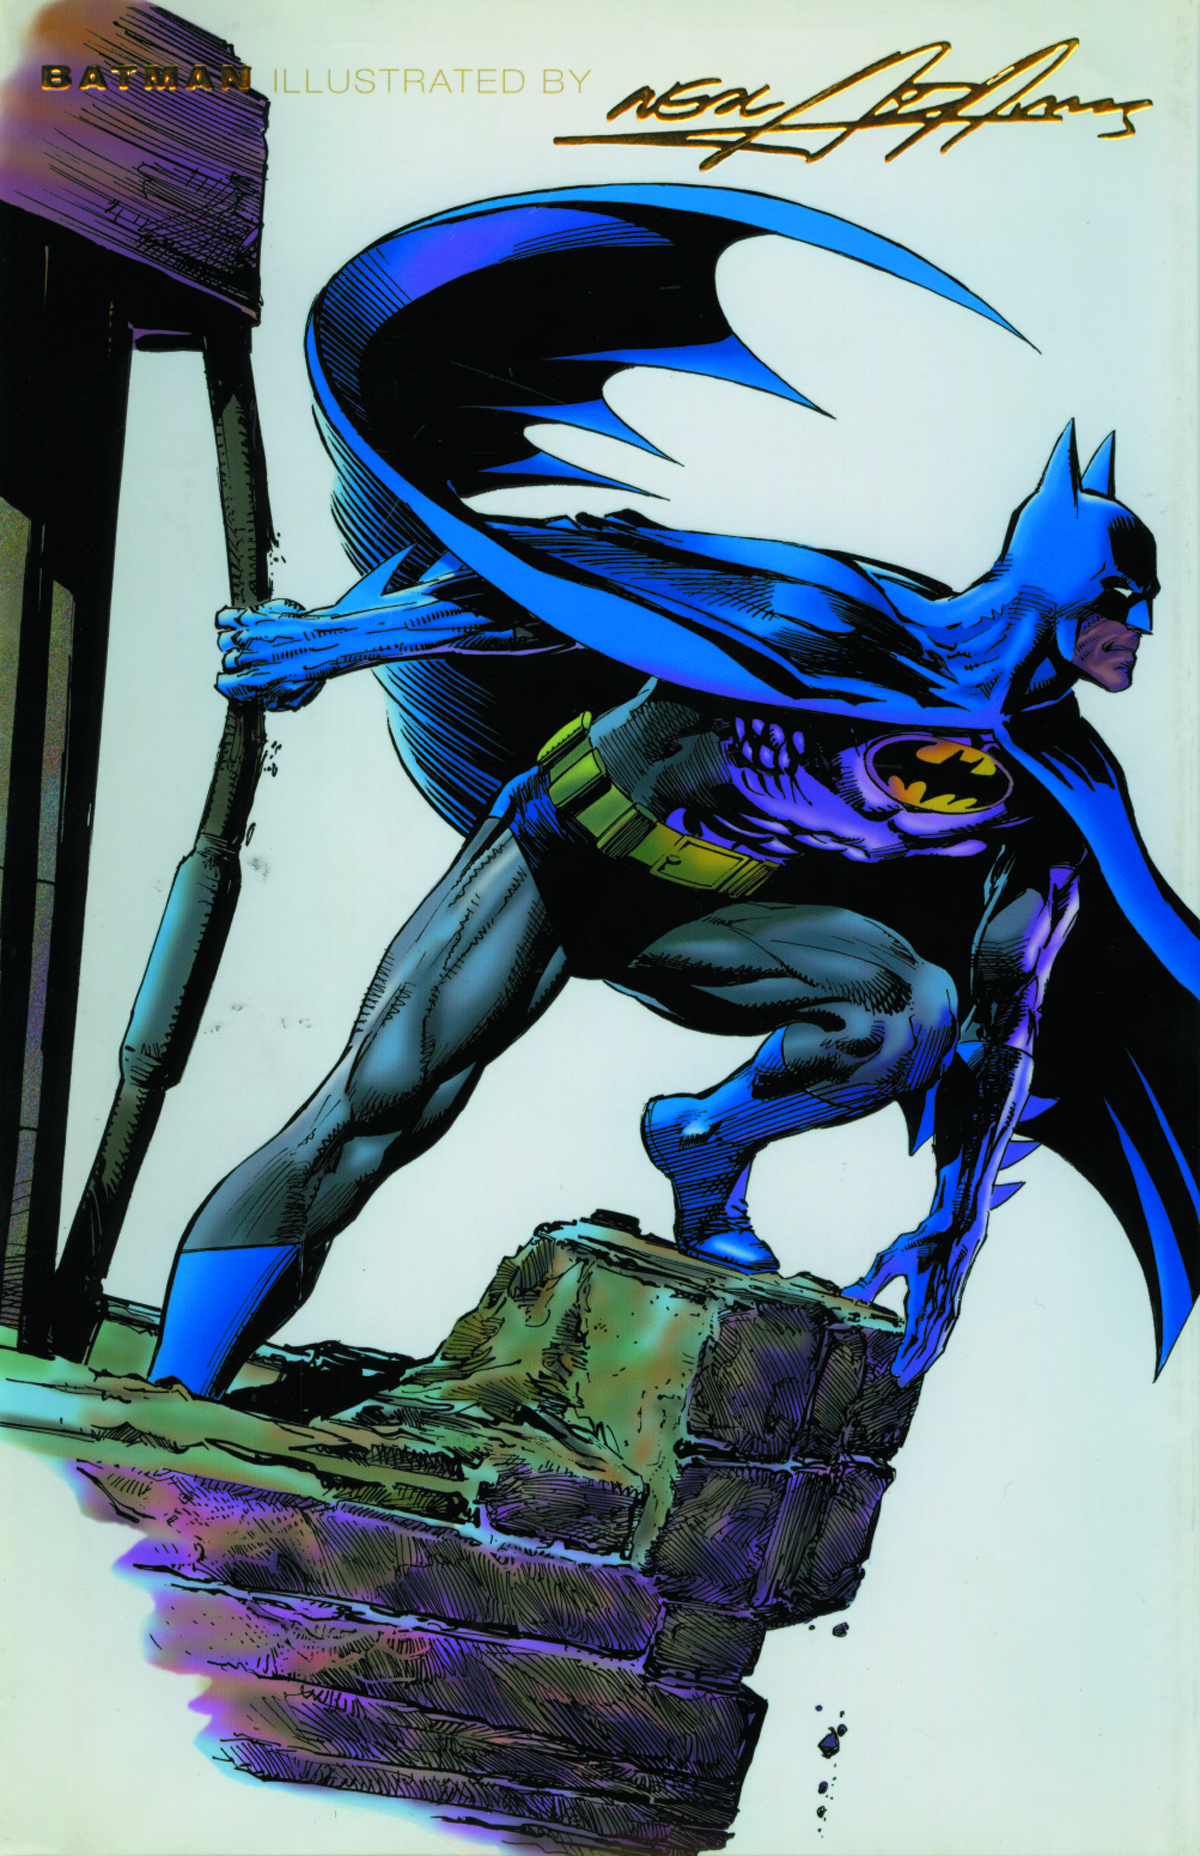 BATMAN ILLUSTRATED BY NEAL ADAMS TP VOL 03